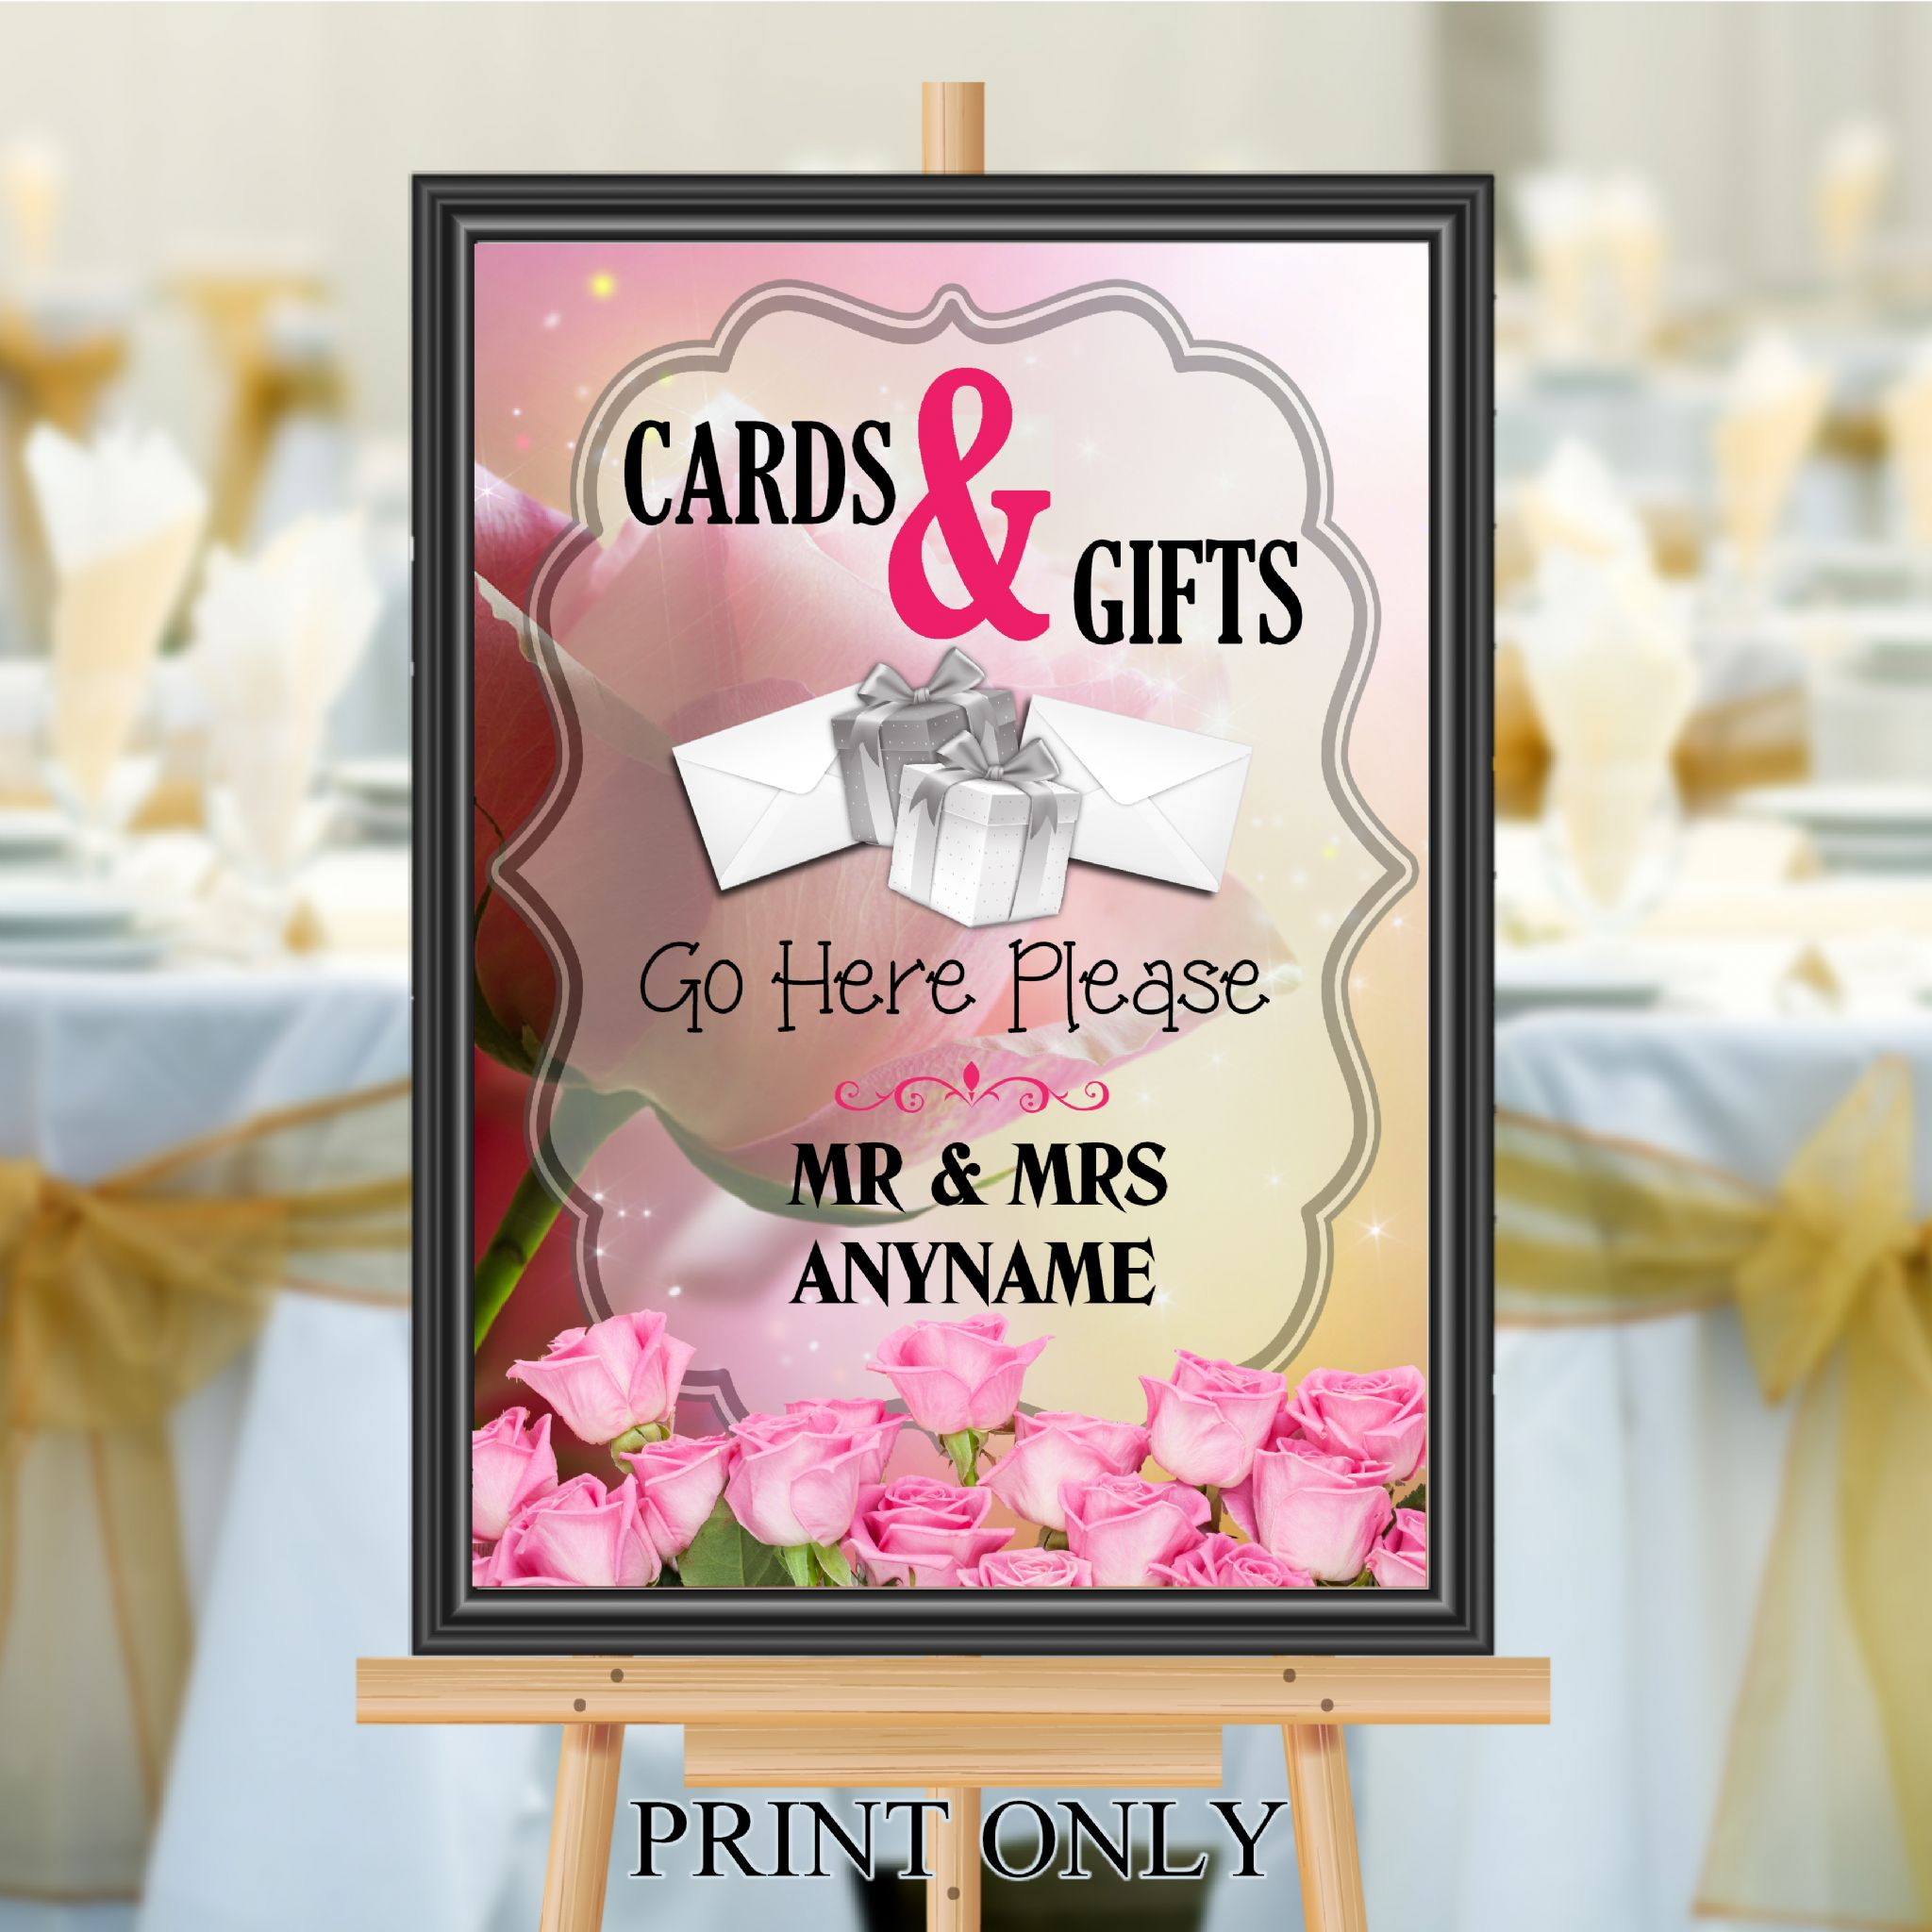 Personalised Wedding Cards Amp Gifts Sign Poster Banner